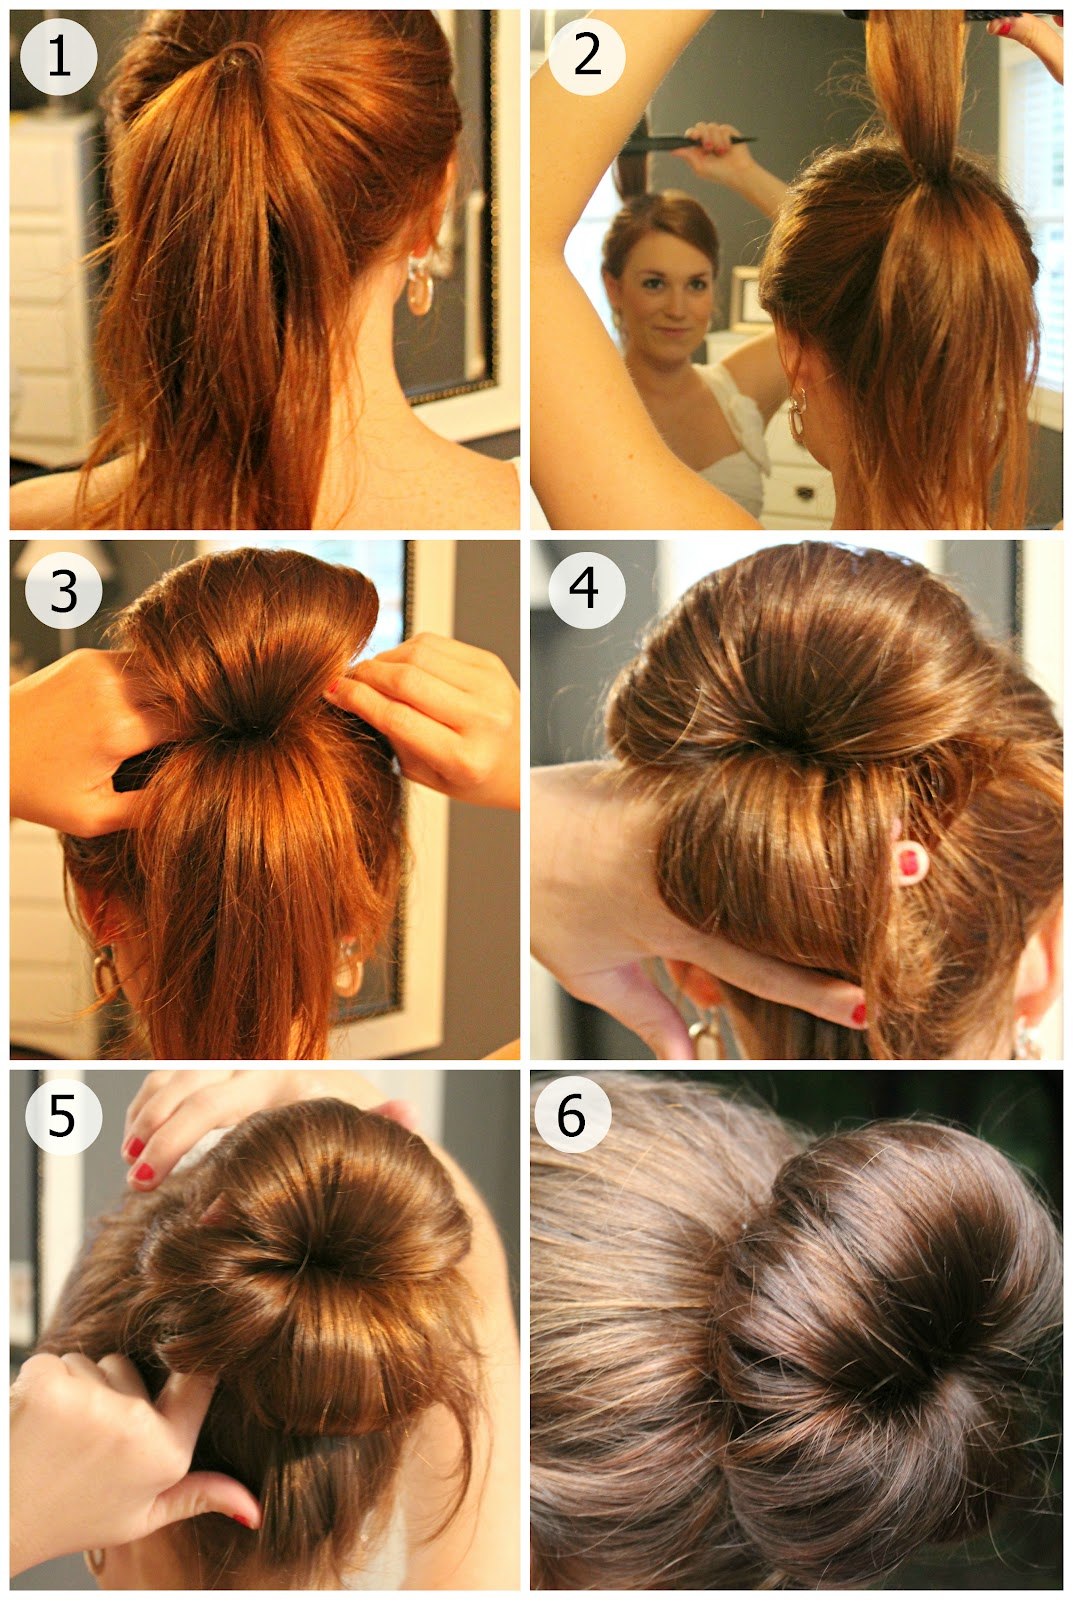 Fabric bun hair tutorial.